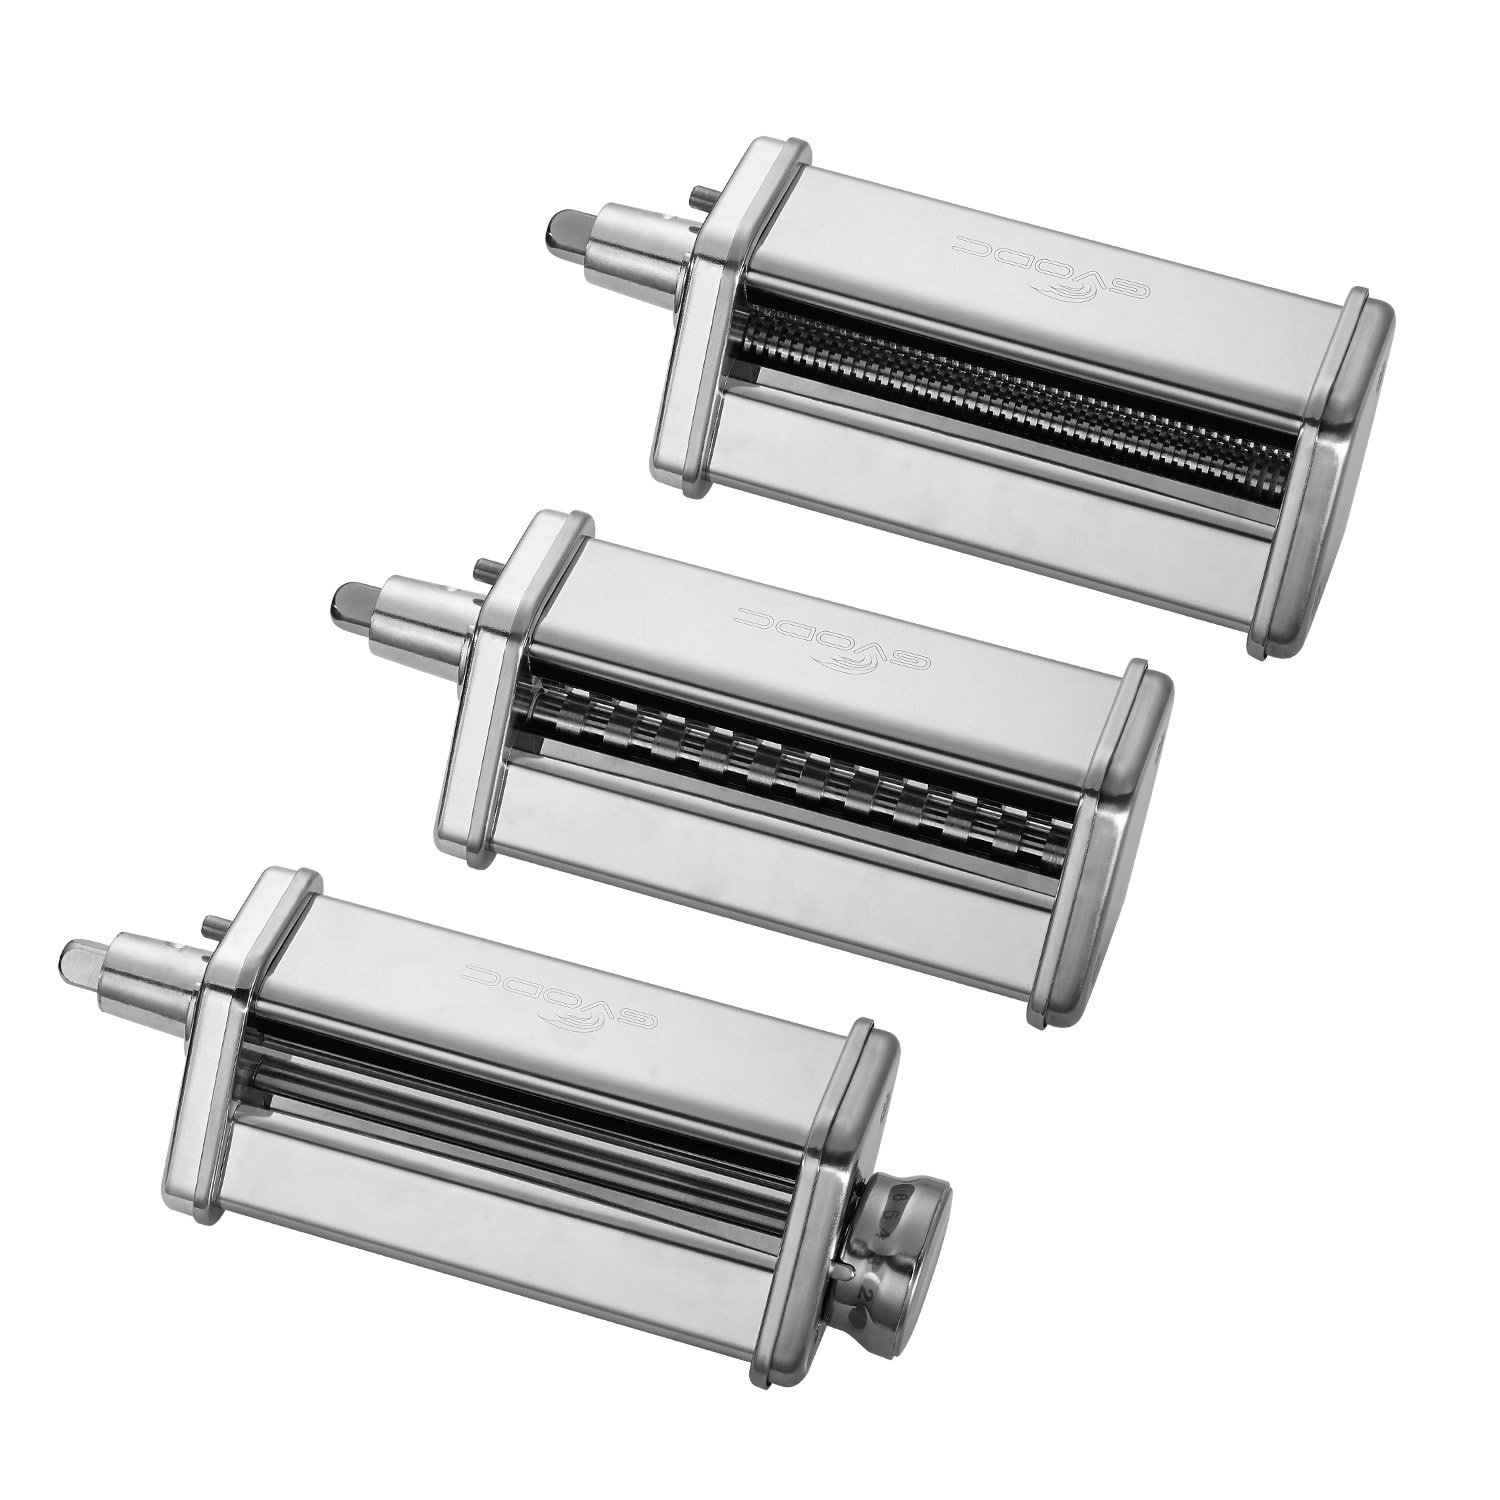 GVODE 3-Piece Pasta Roller and Cutter Set for KitchenAid Stand Mixers,Stainless Steel by GVODE (Image #1)